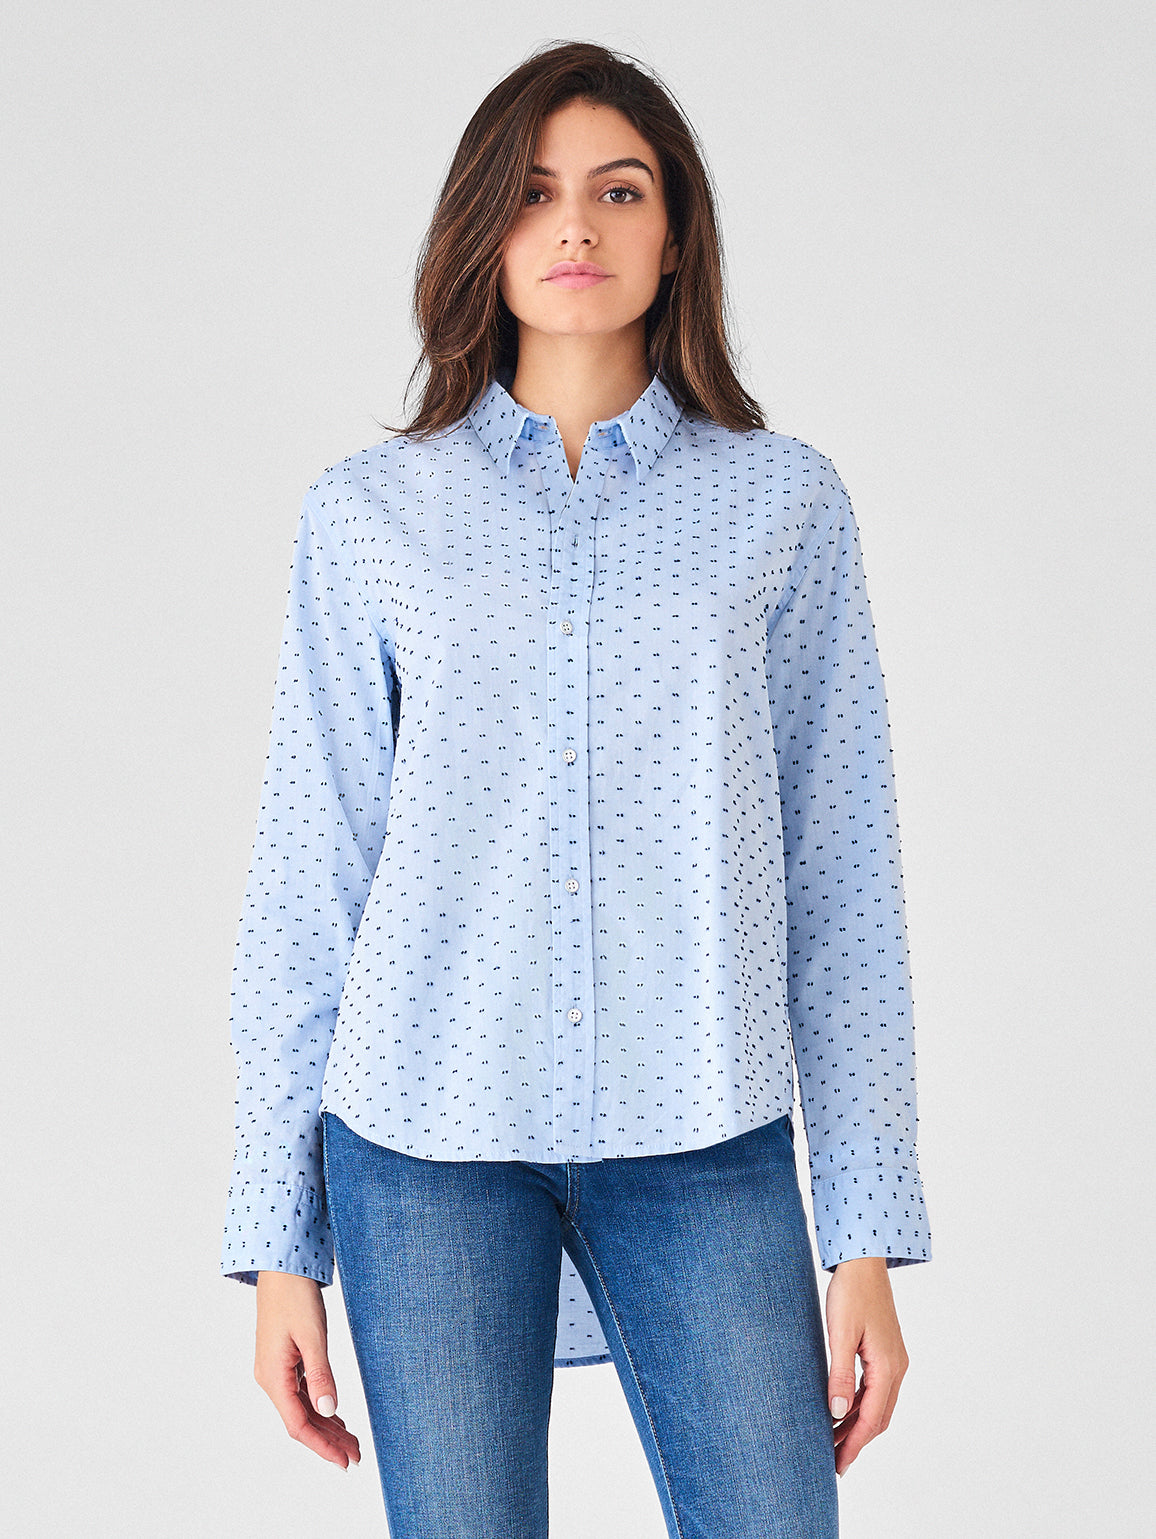 Metropolitan Ave Top | Blue Dotted